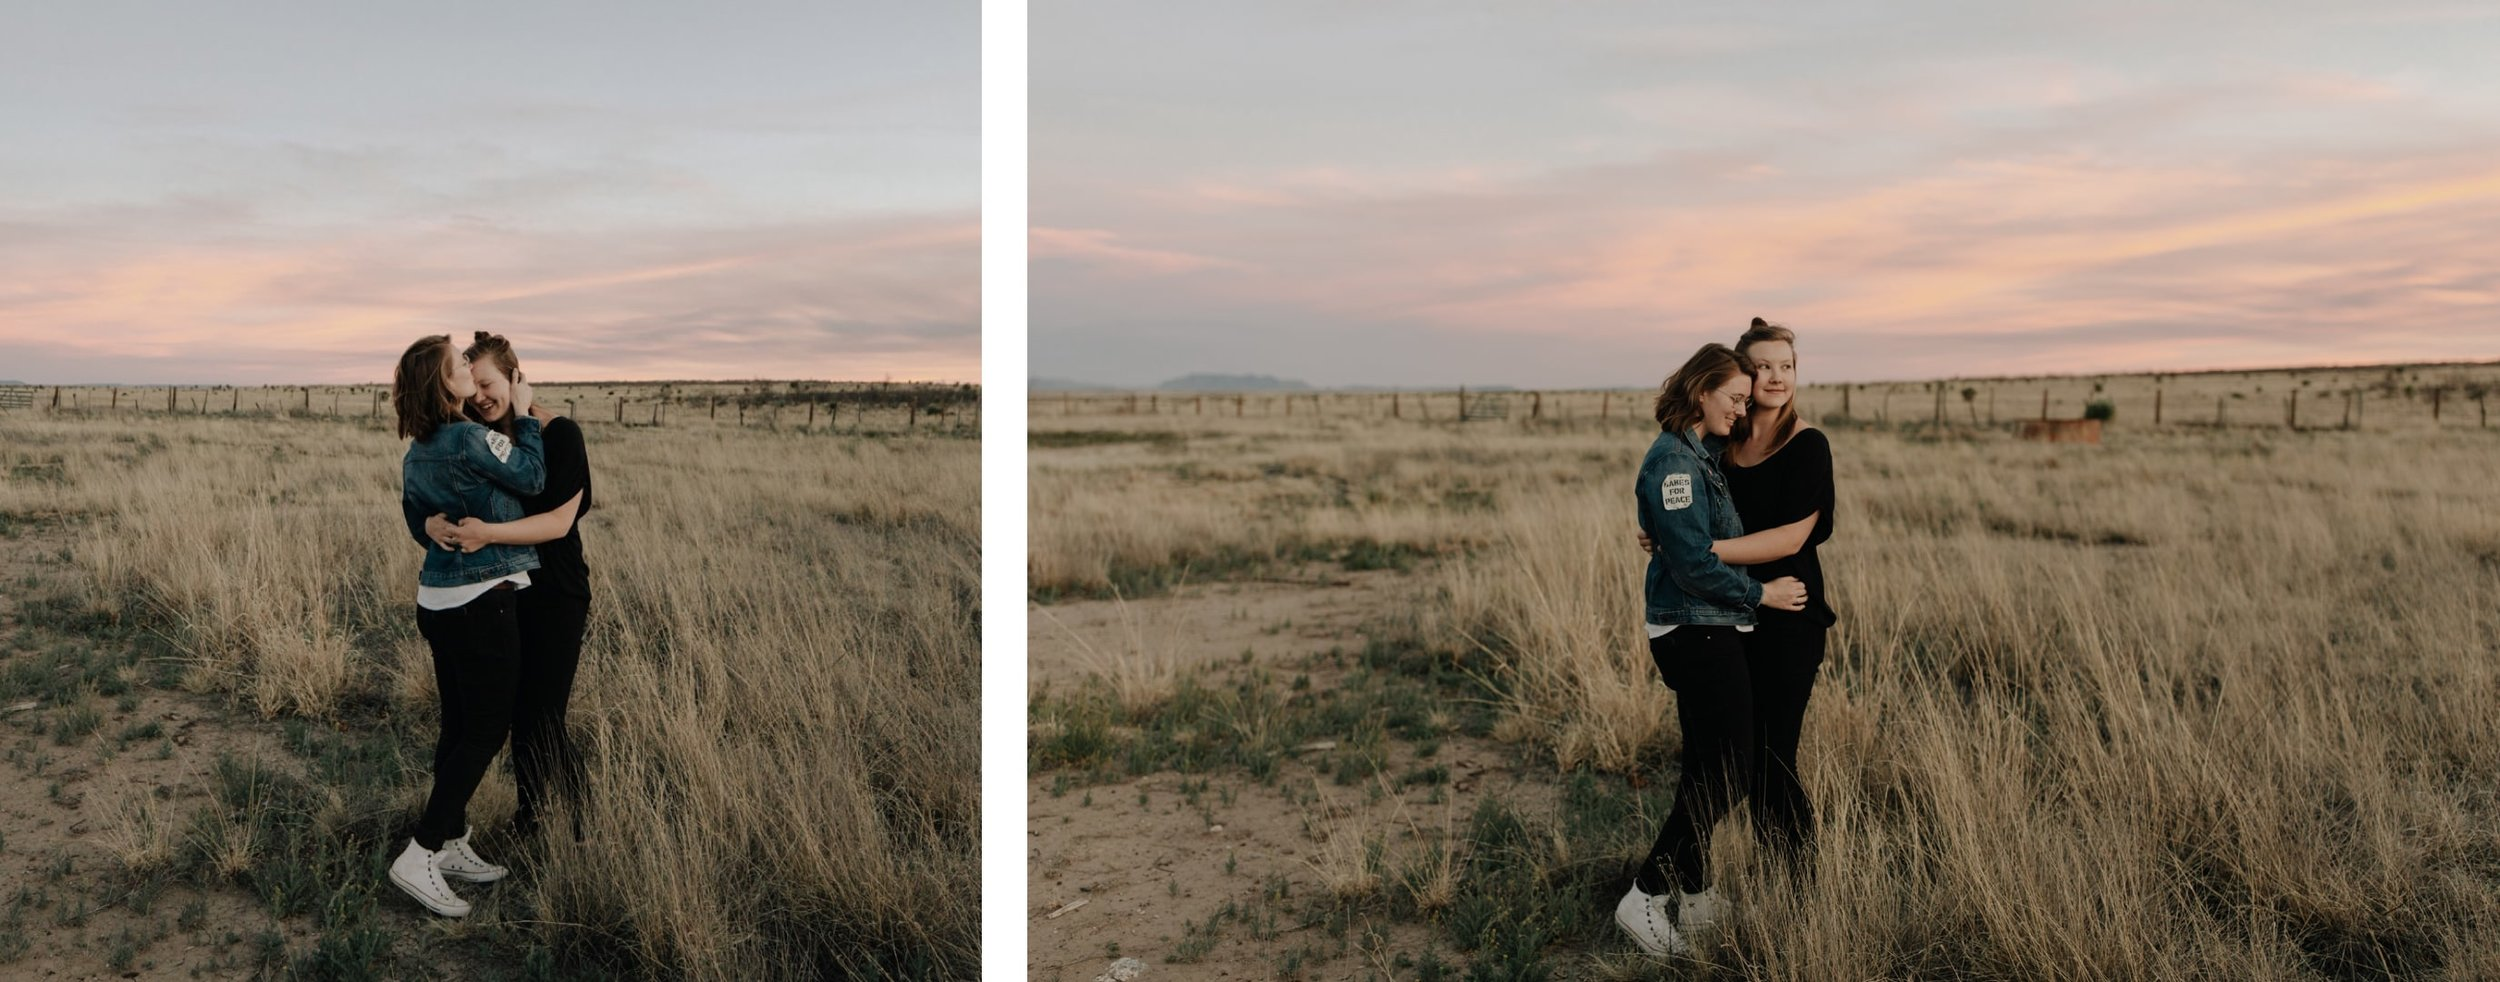 Marfa-TX-Engagement-Photo-Shoot_13.jpg